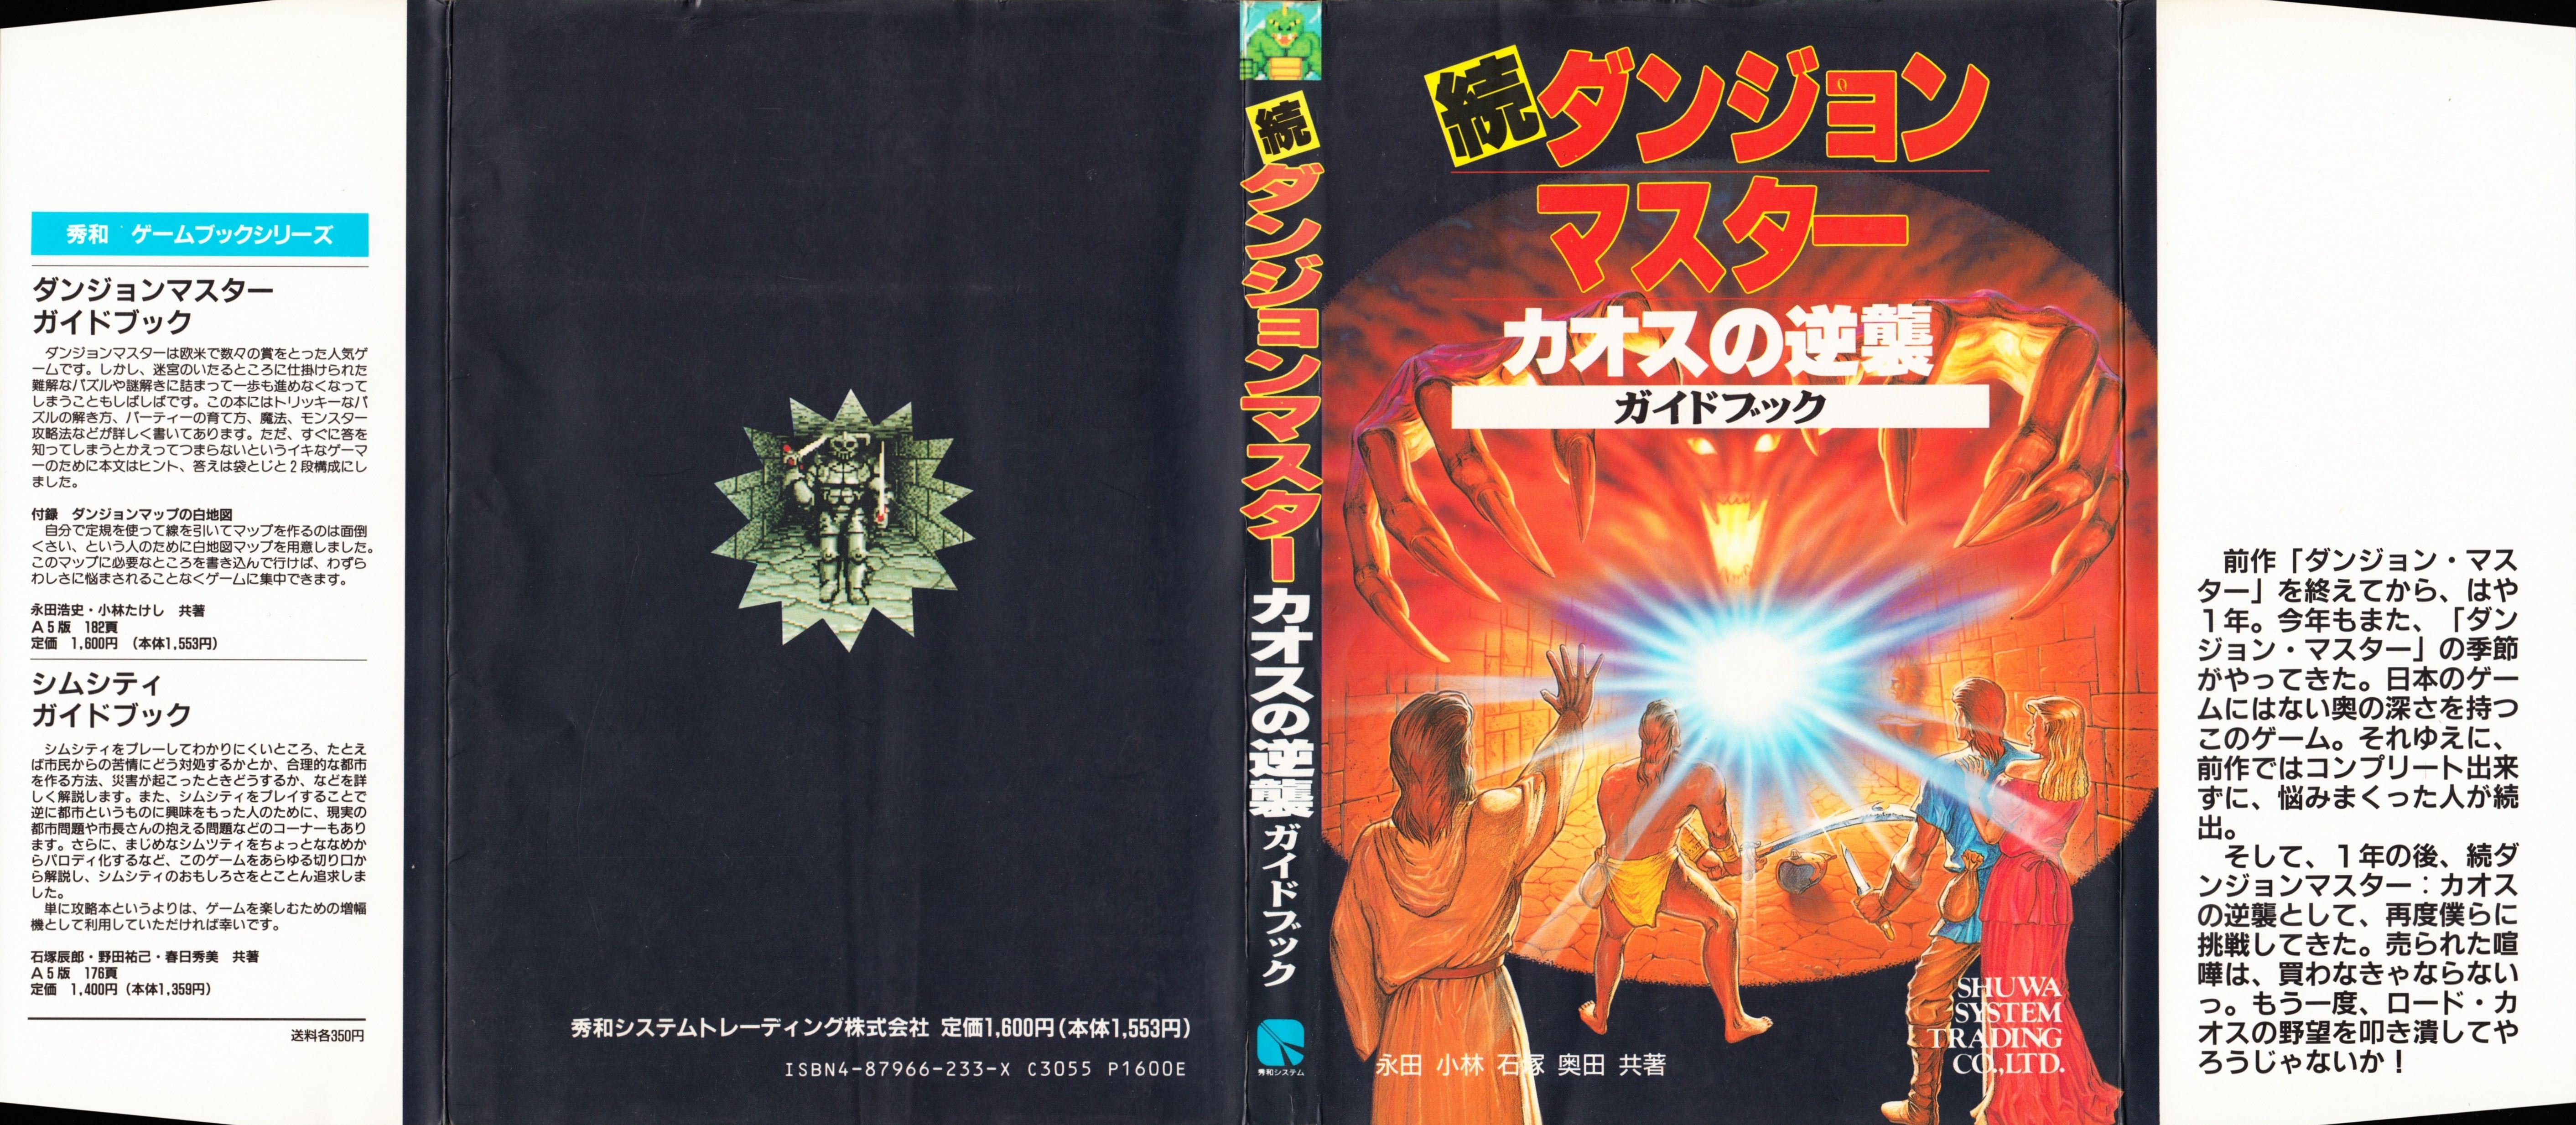 Hint Book - Dungeon Master Sequel Chaos Strikes Back Guide Book - JP - Dust Jacket - Front - Scan